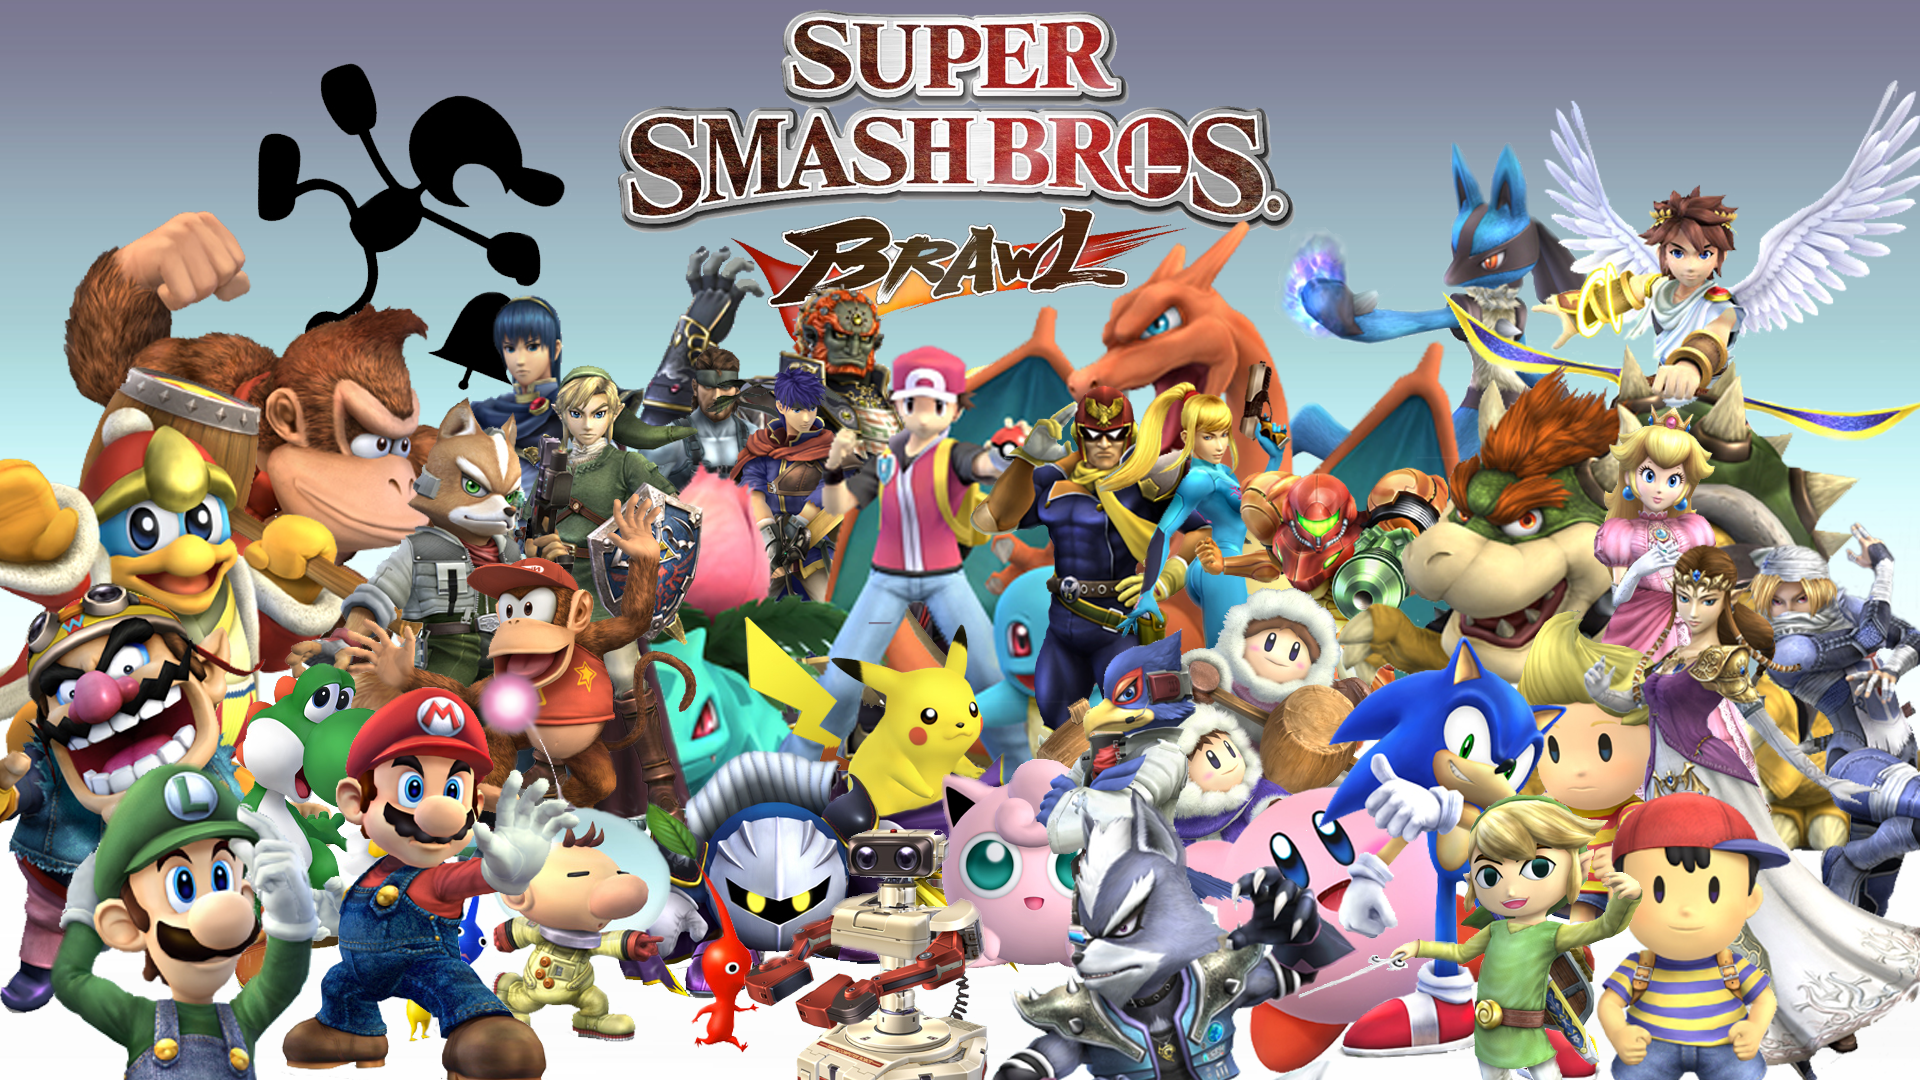 Super Smash Bros Wallpaper